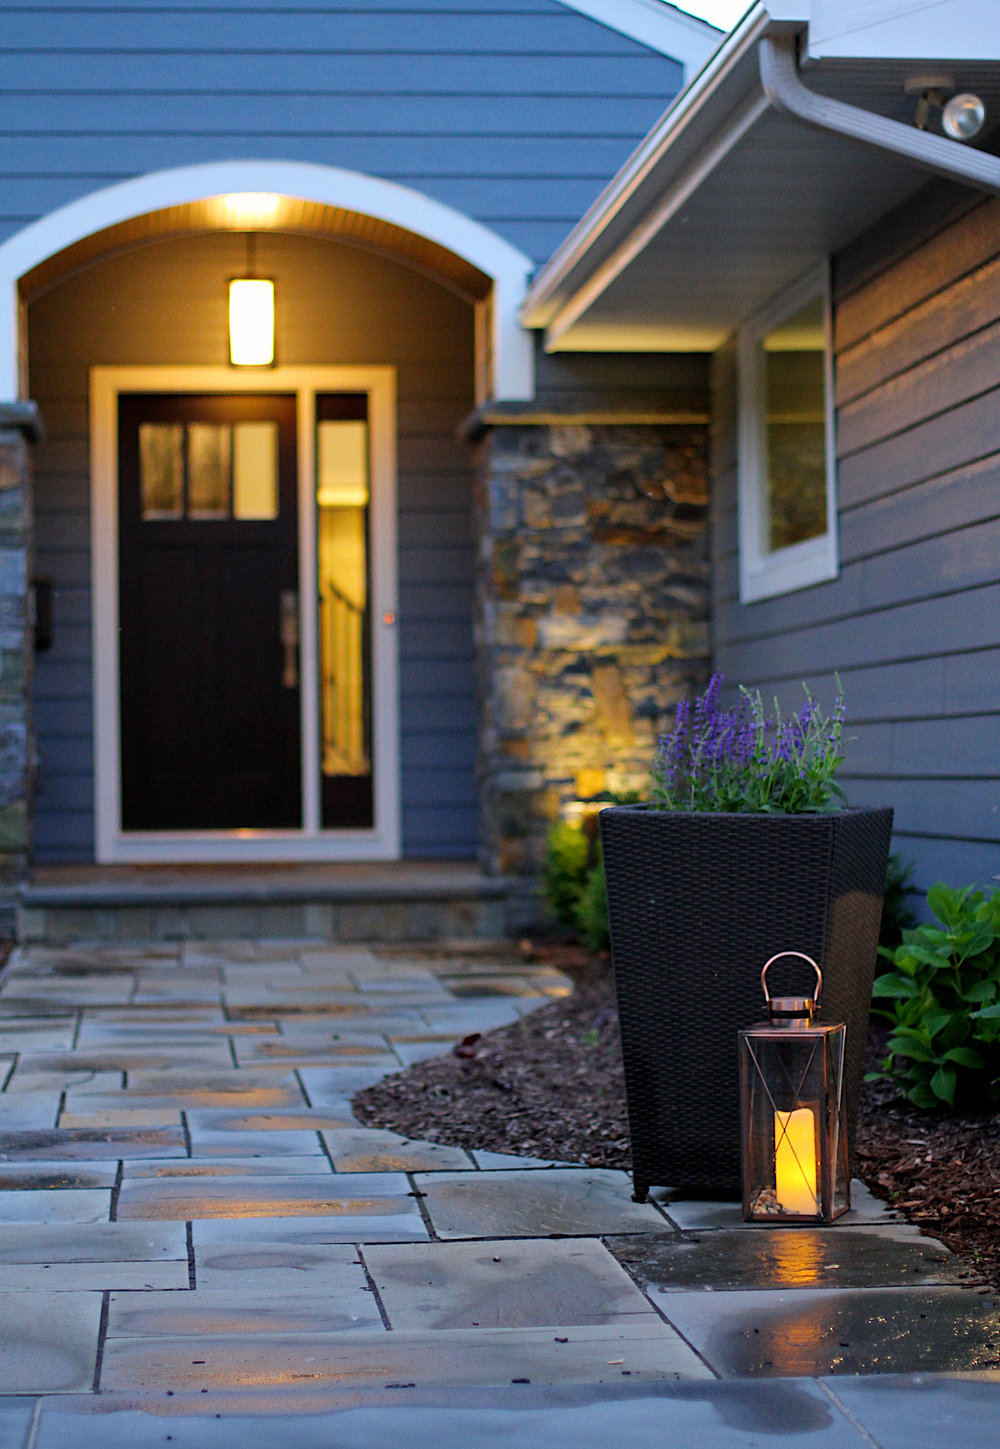 Close-up of Edina home's new welcoming stone walkway filled with the natural look of stones, mulch and greens.